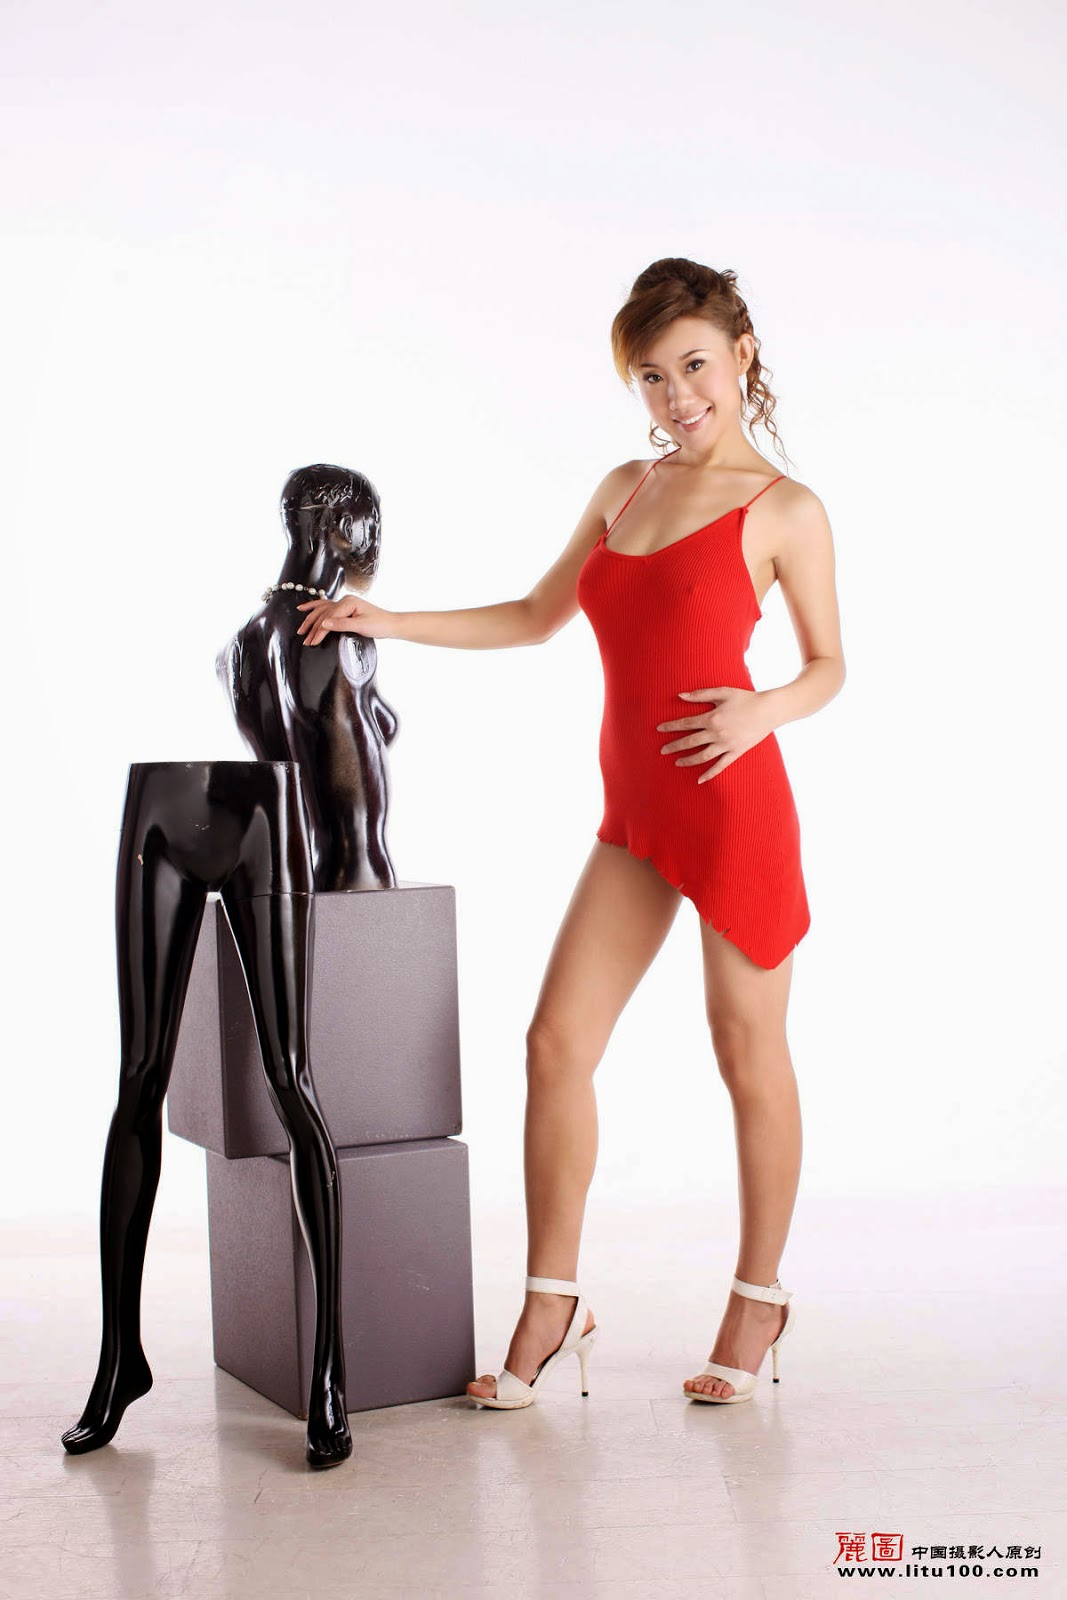 Chinese porn model - Litu 100 nude collection - Chinese